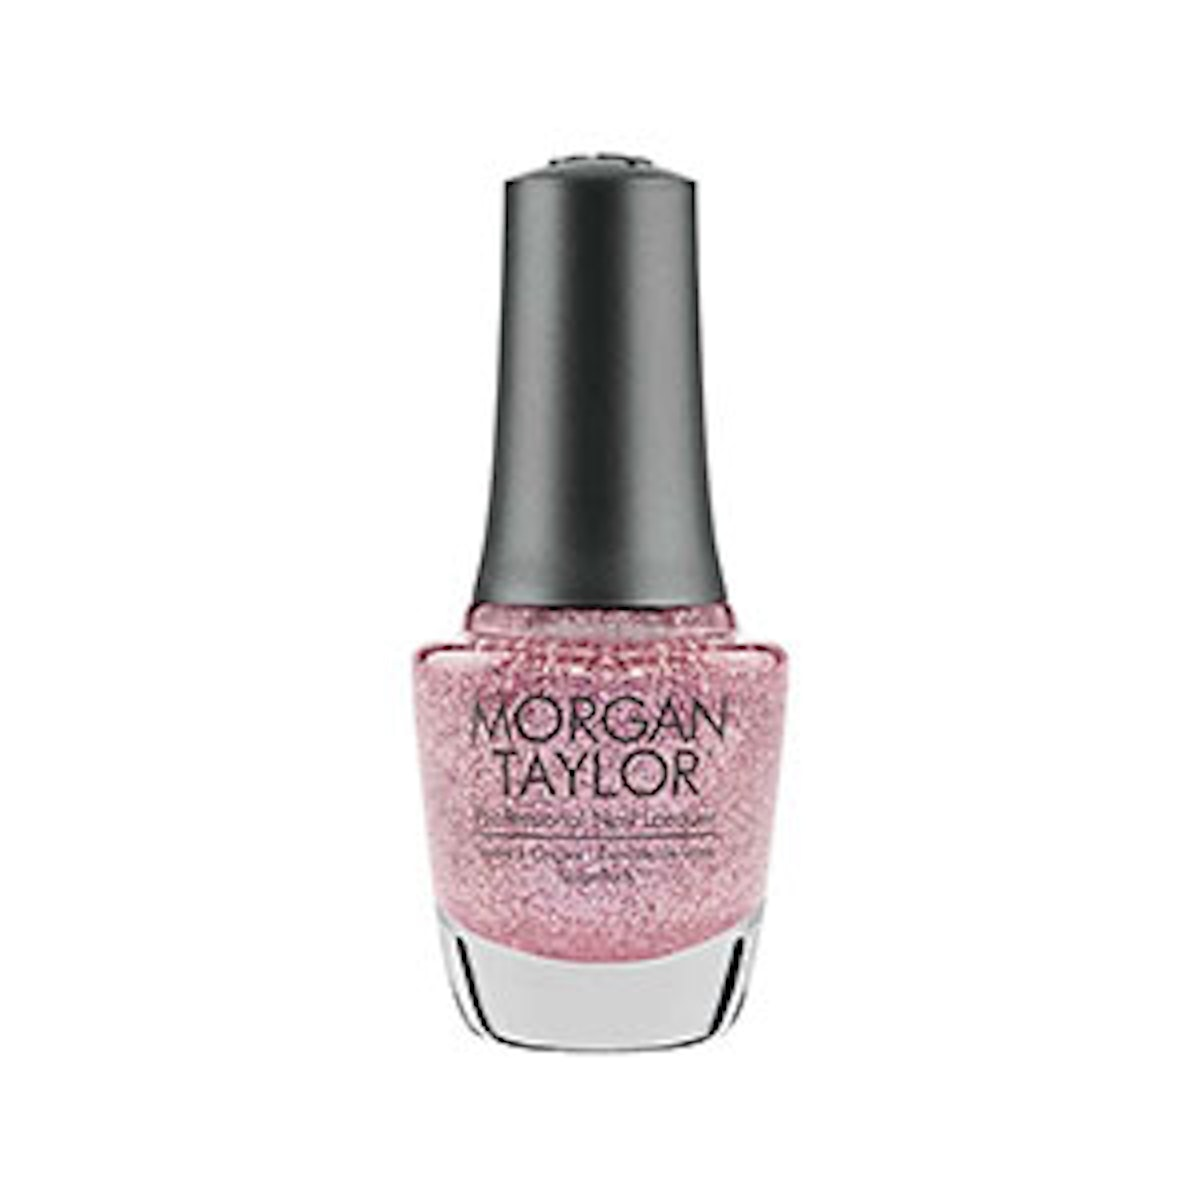 Morgan Taylor Professional Nail Lacquer In Sweetest Thing